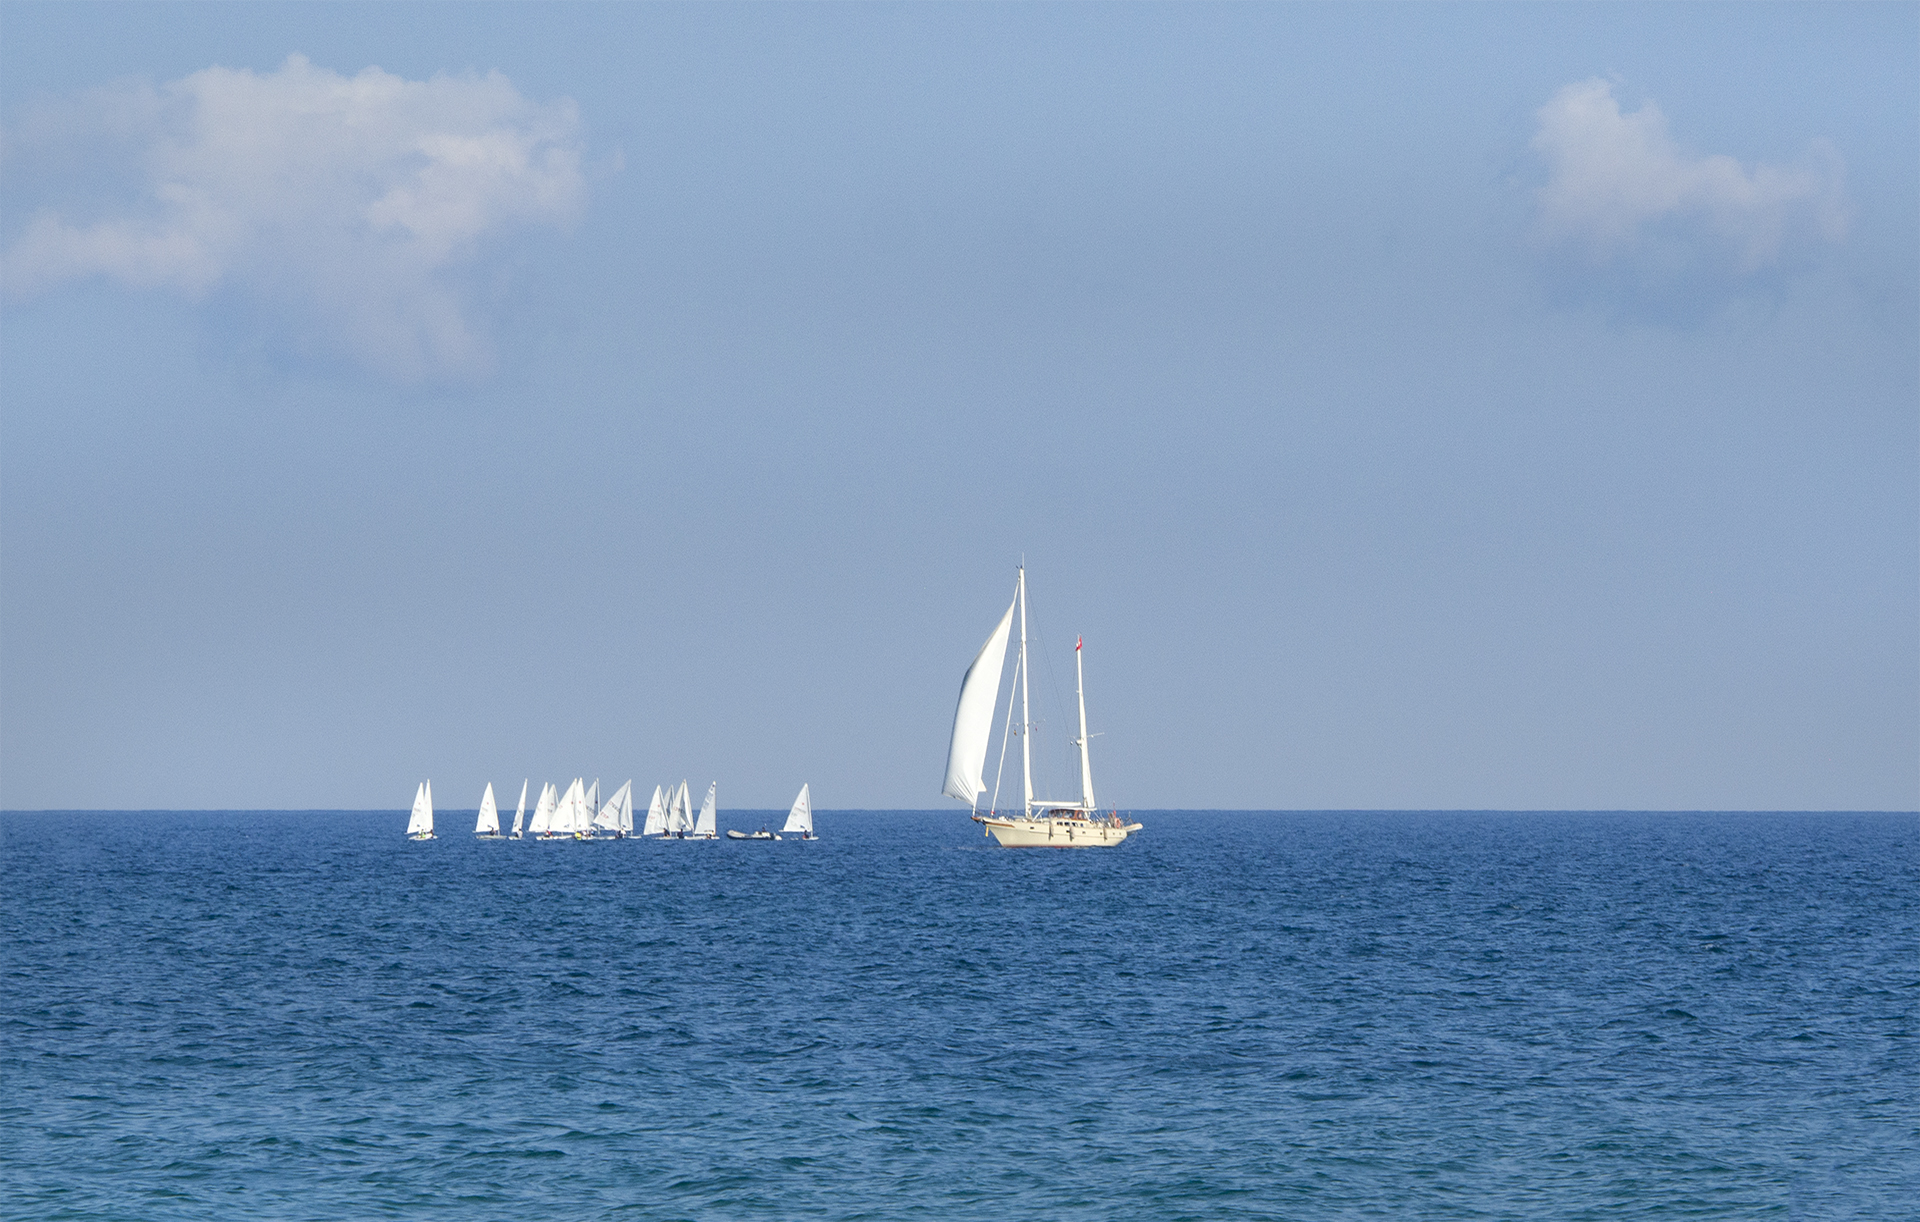 Sailing School on the Mediterranean Sea, blue sky with puffs of clouds with the blue sea and white sailboats travelling in the wind